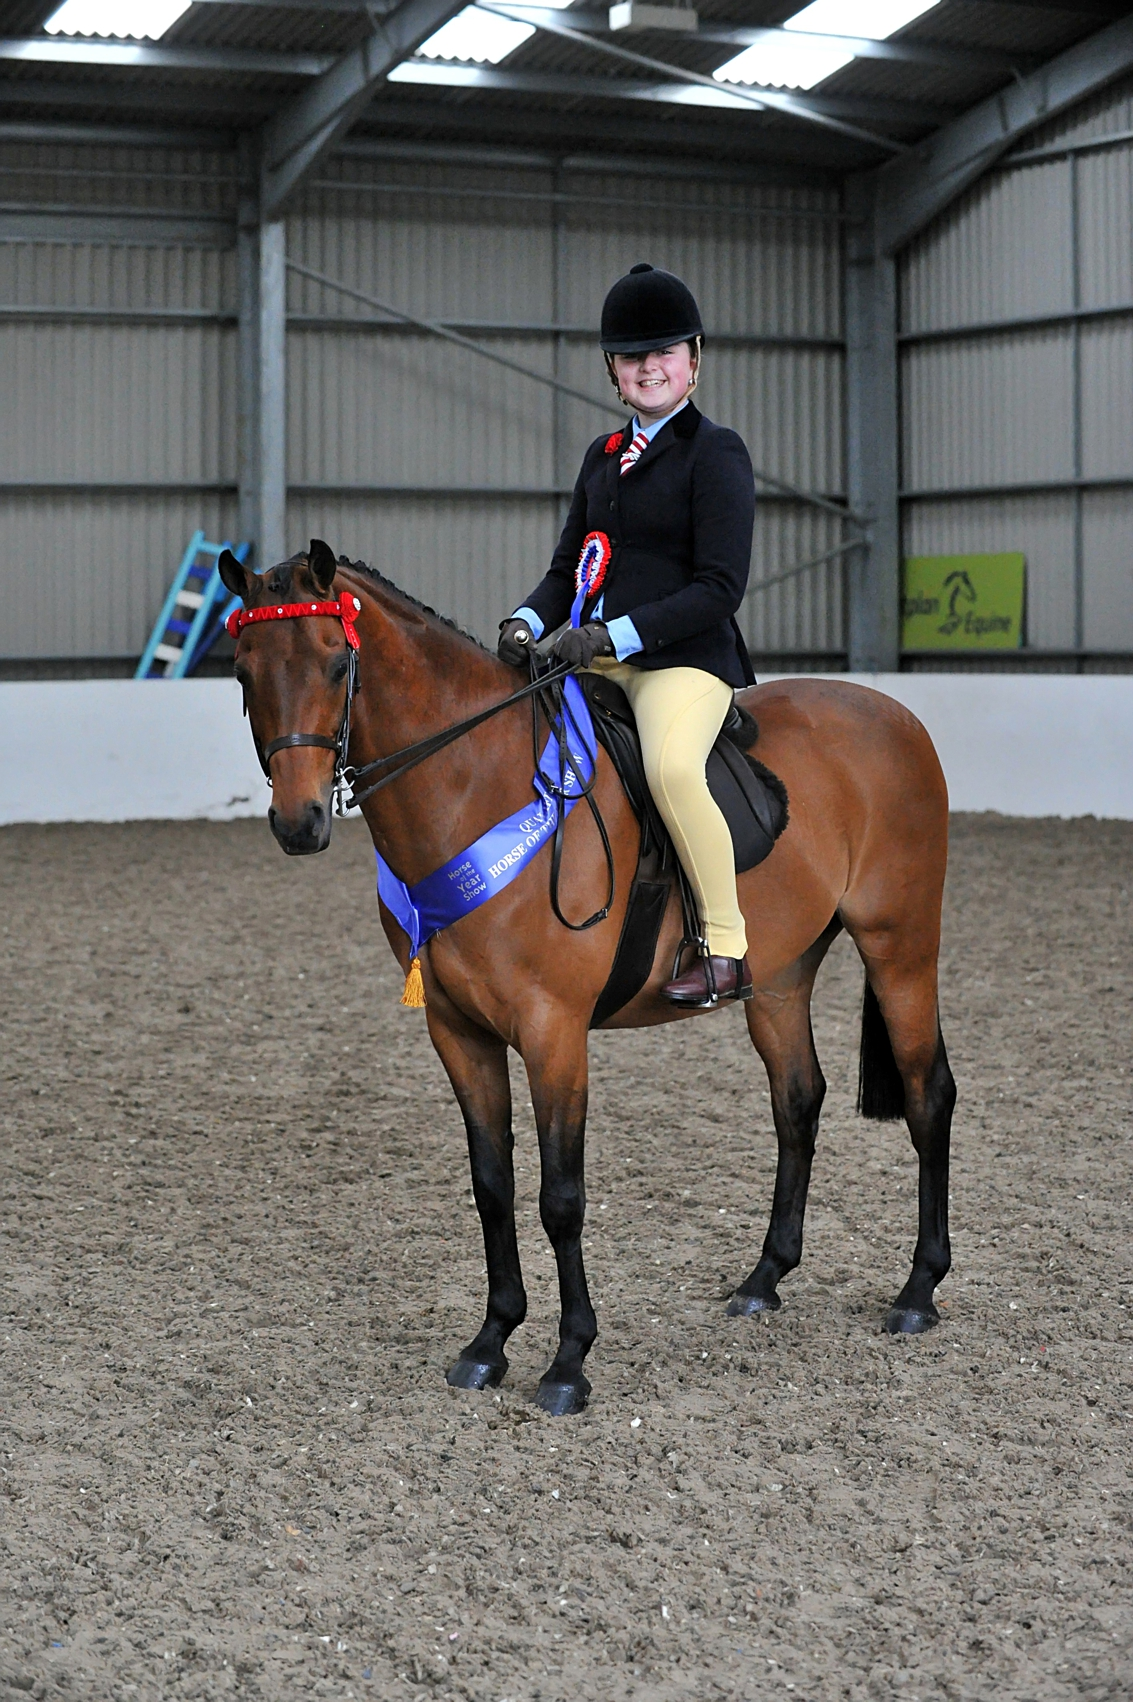 SEIBEllie Conwayn on Rotherwood Mr Pepys 1 Pony copyright SMR Photos - Impressive Turnout At Vale View, South Essex Insurance Brokers Search For A Star Qualifier